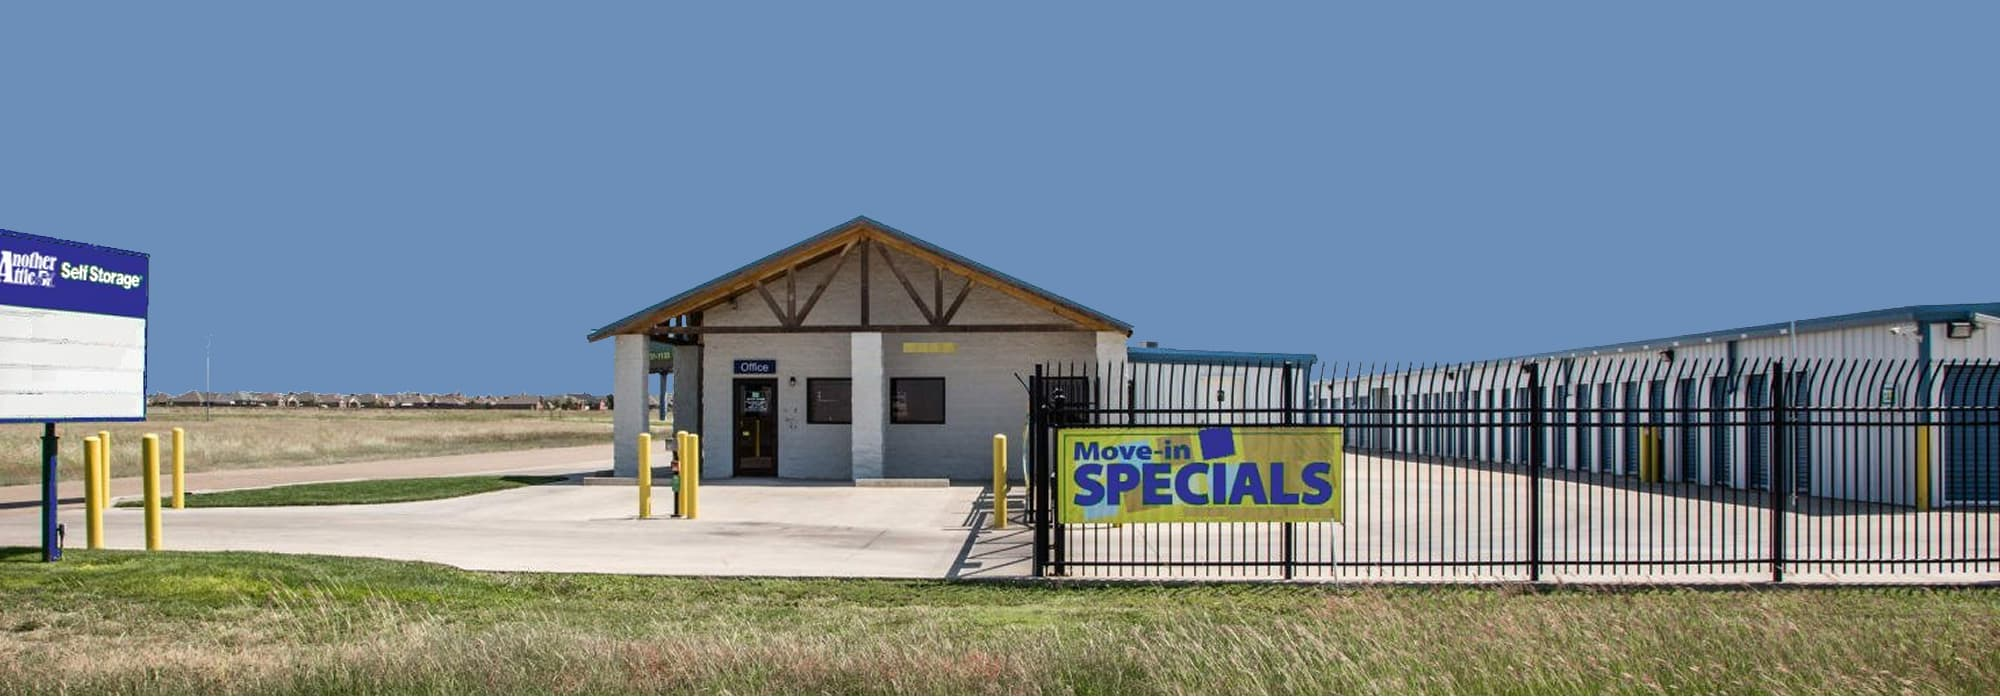 Self storage in Amarillo TX